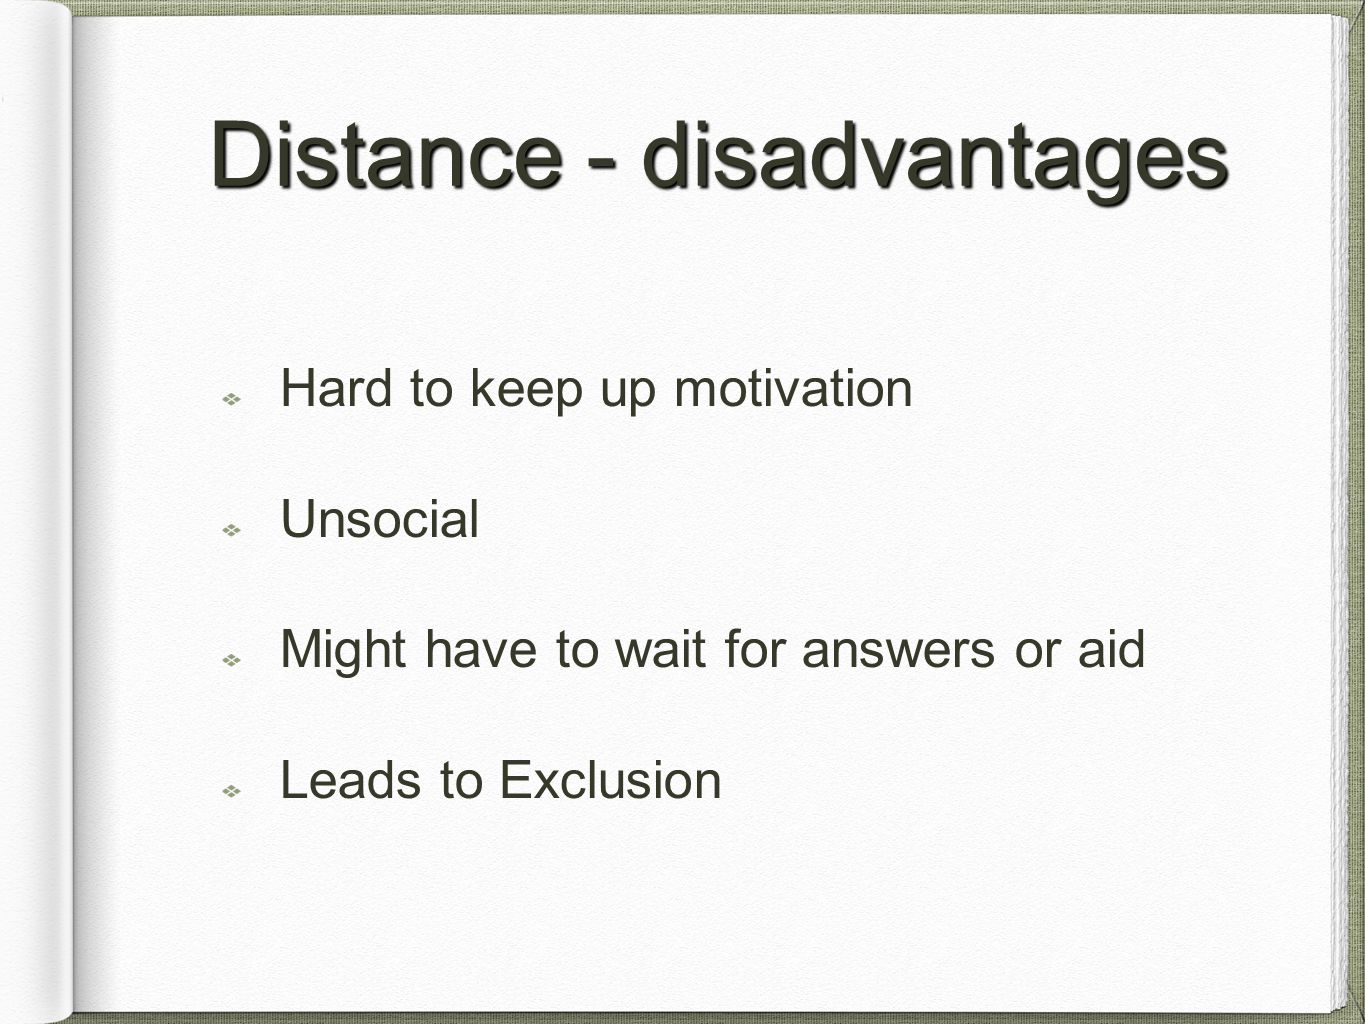 Distance - disadvantages Hard to keep up motivation Unsocial Might have to wait for answers or aid Leads to Exclusion